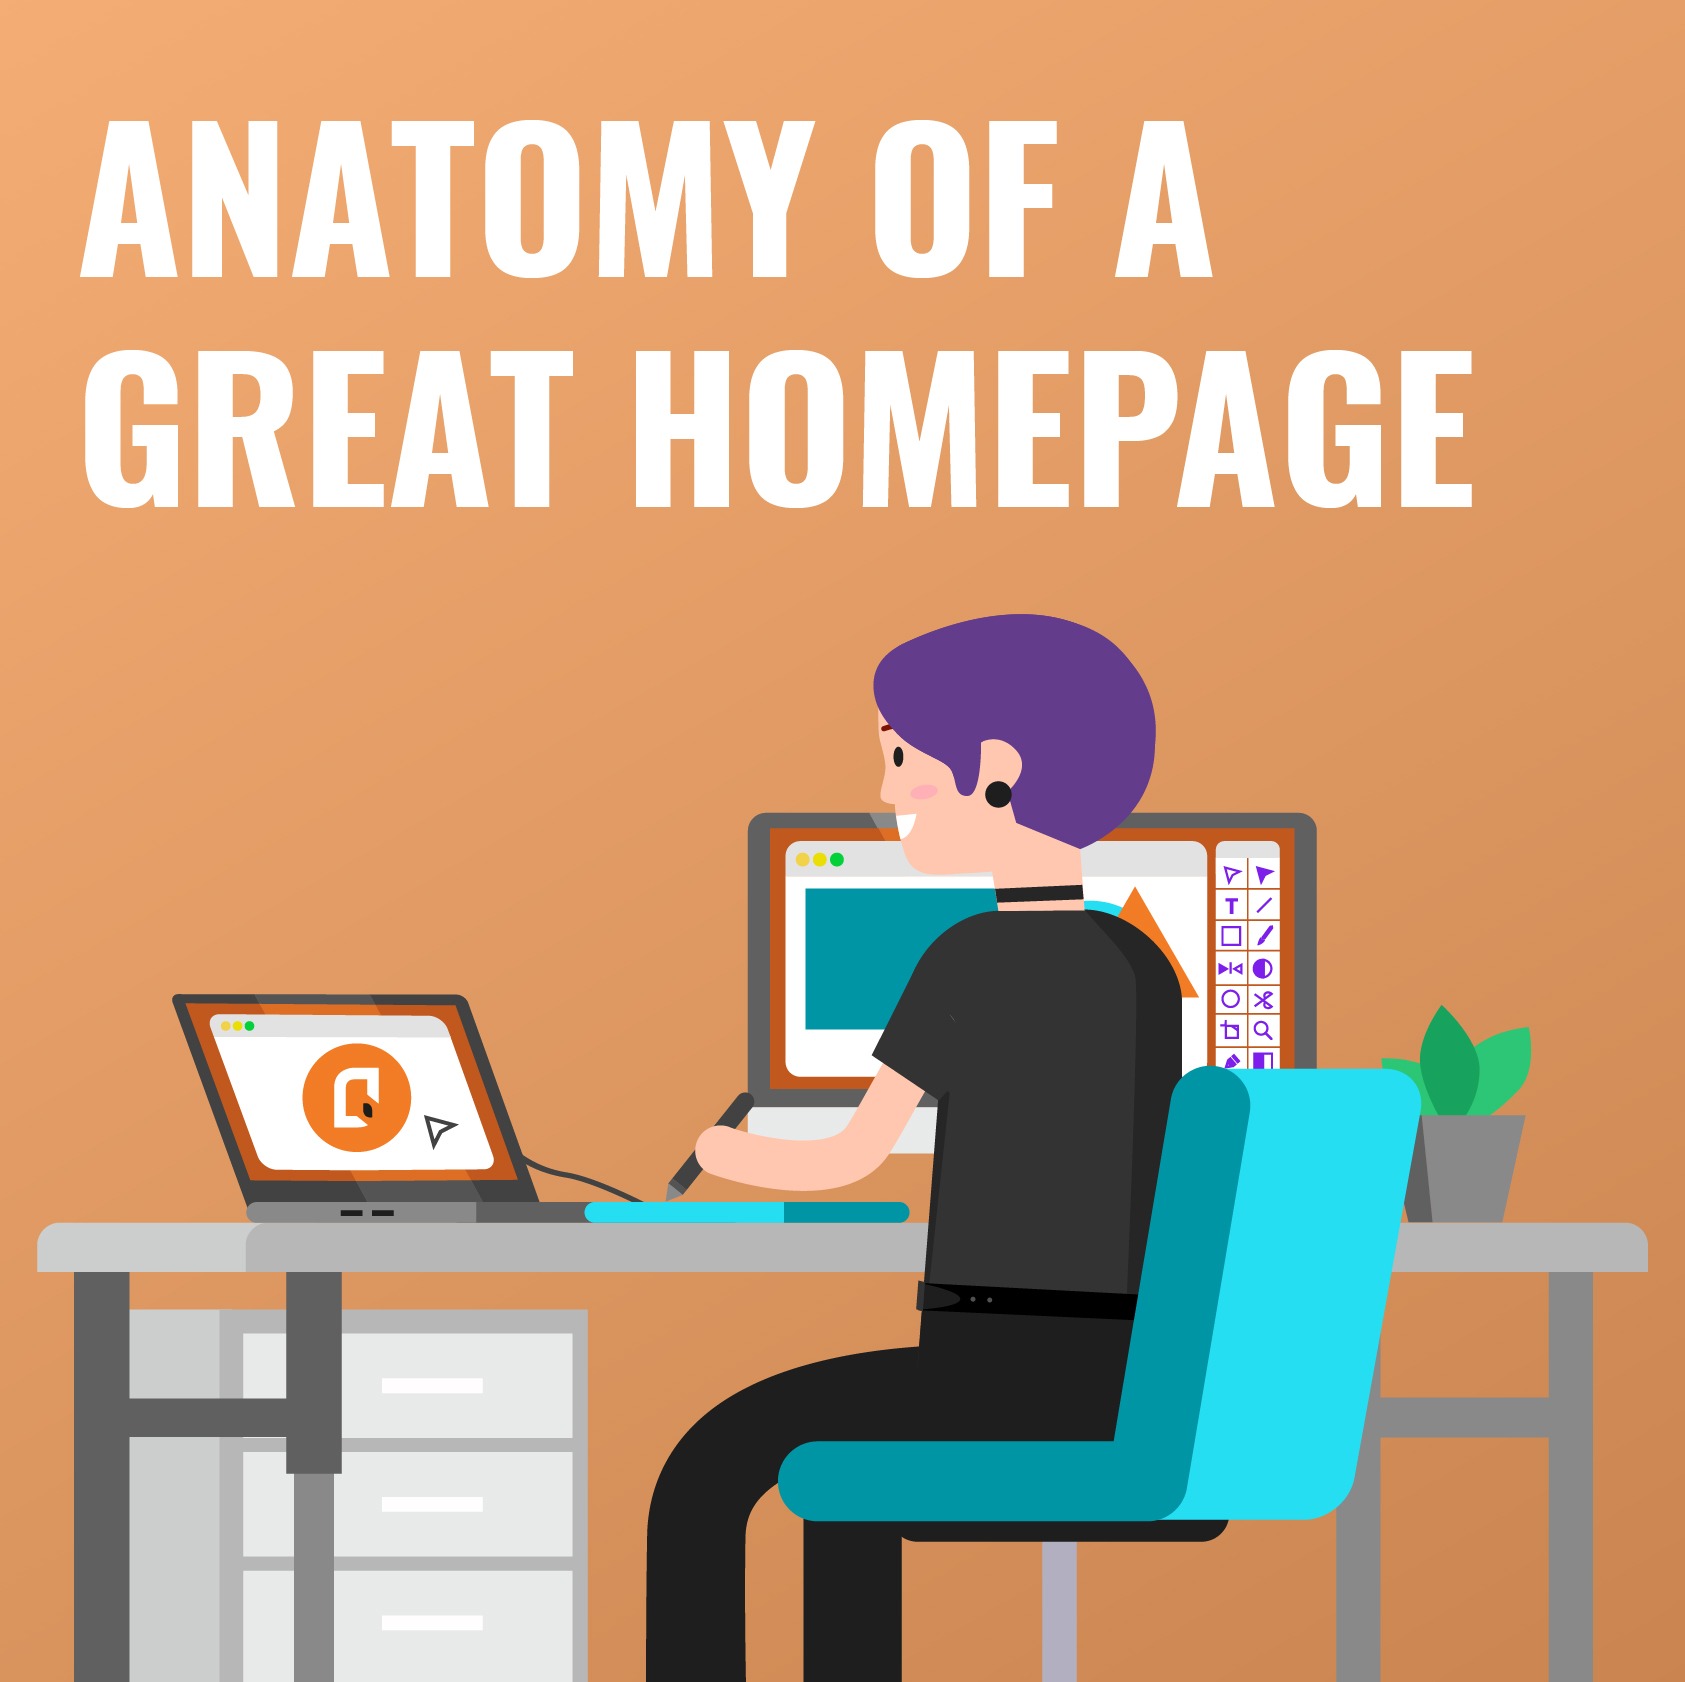 Anatomy of a great homepage.